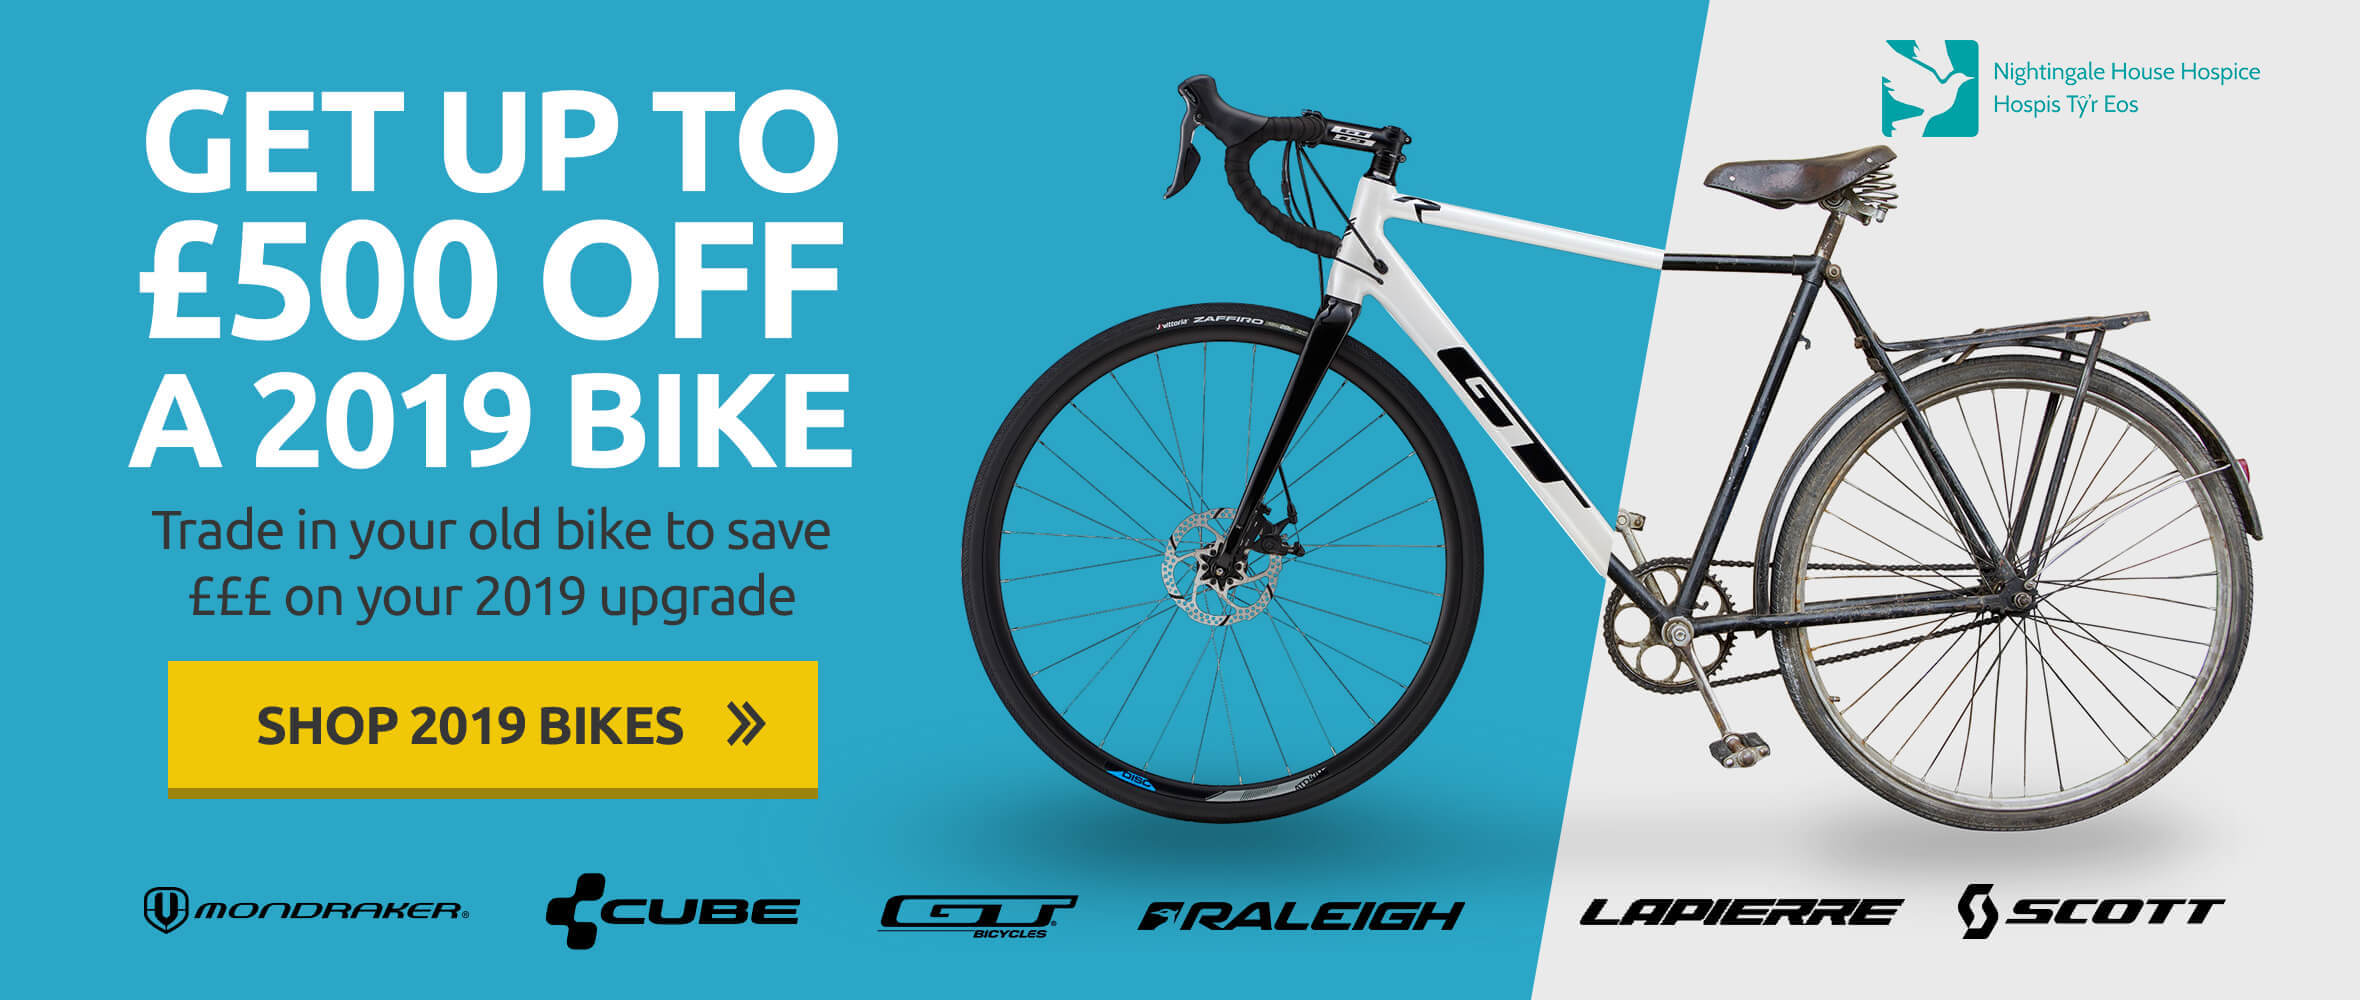 Get up to £500 off a 2019 bike